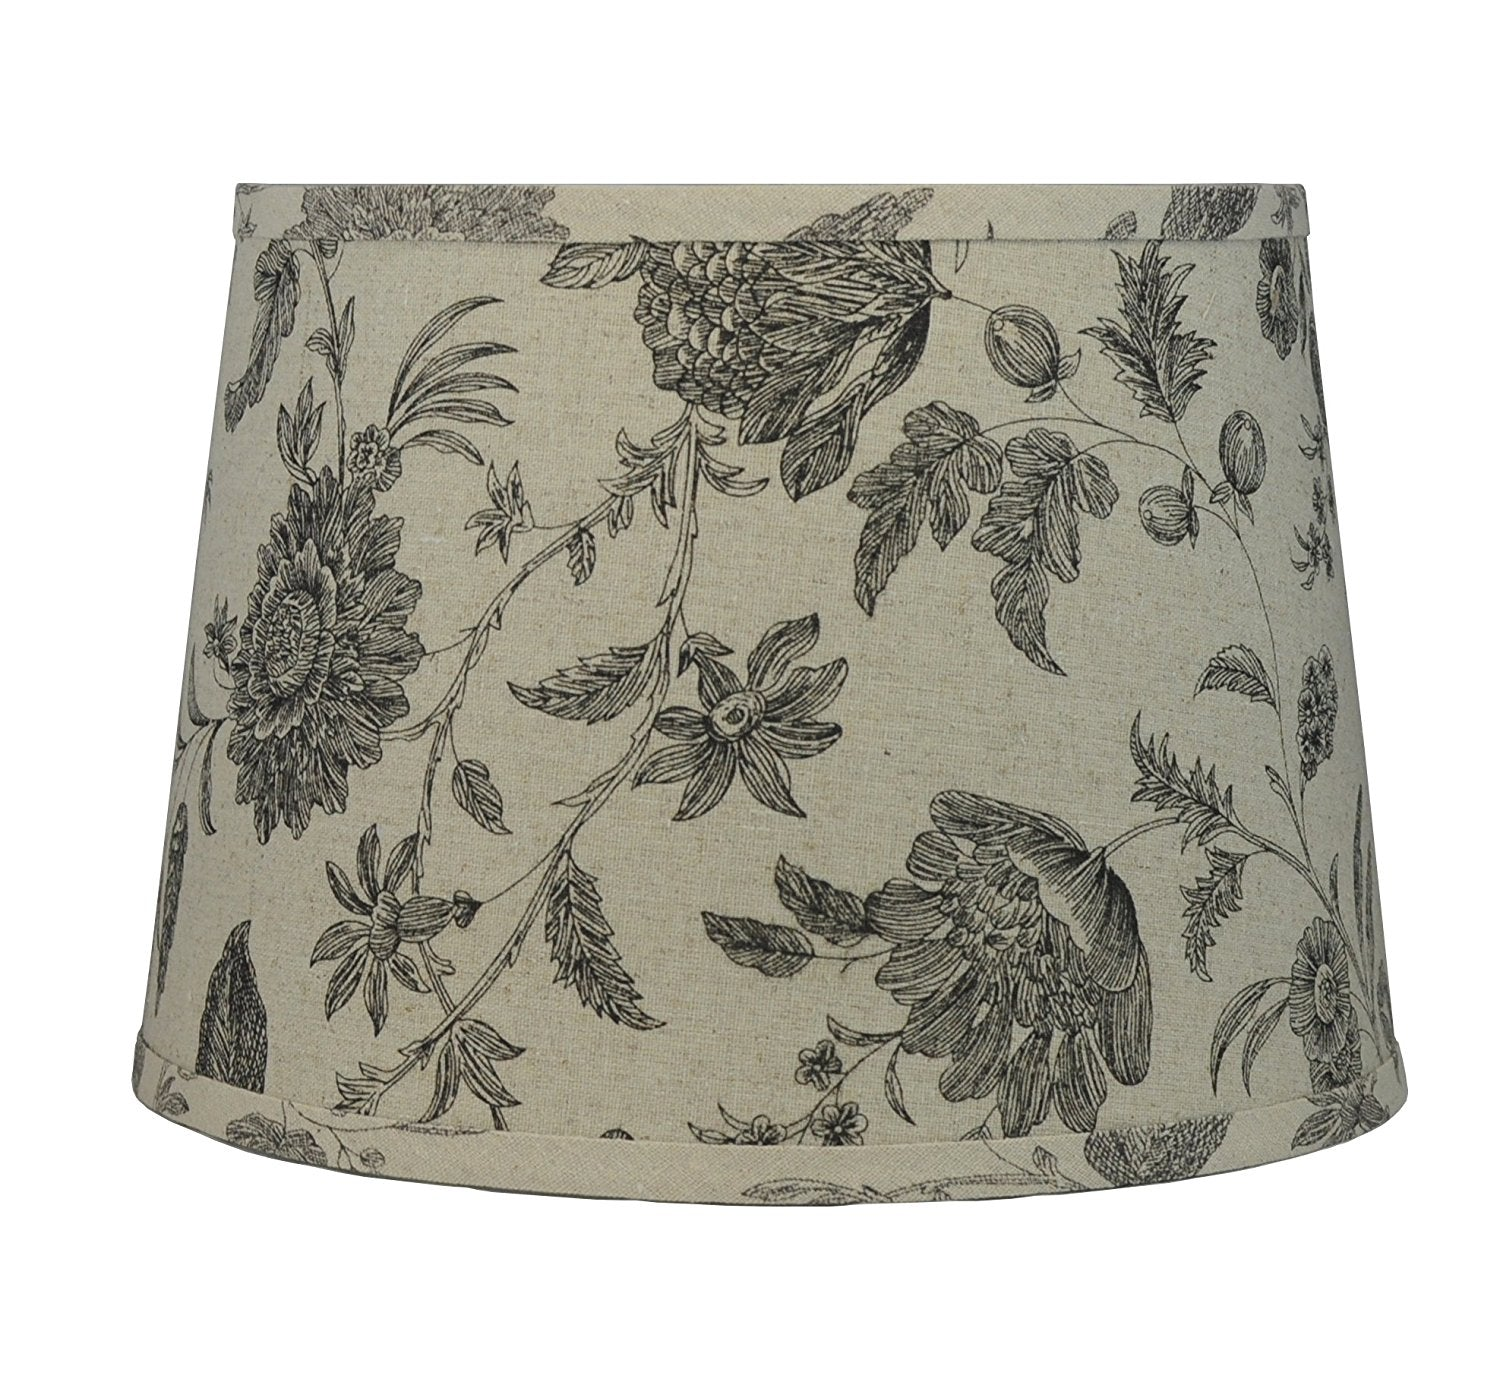 French Drum Lampshade, Natrual Linen With Flowers and Leaves, 16-inch Spider